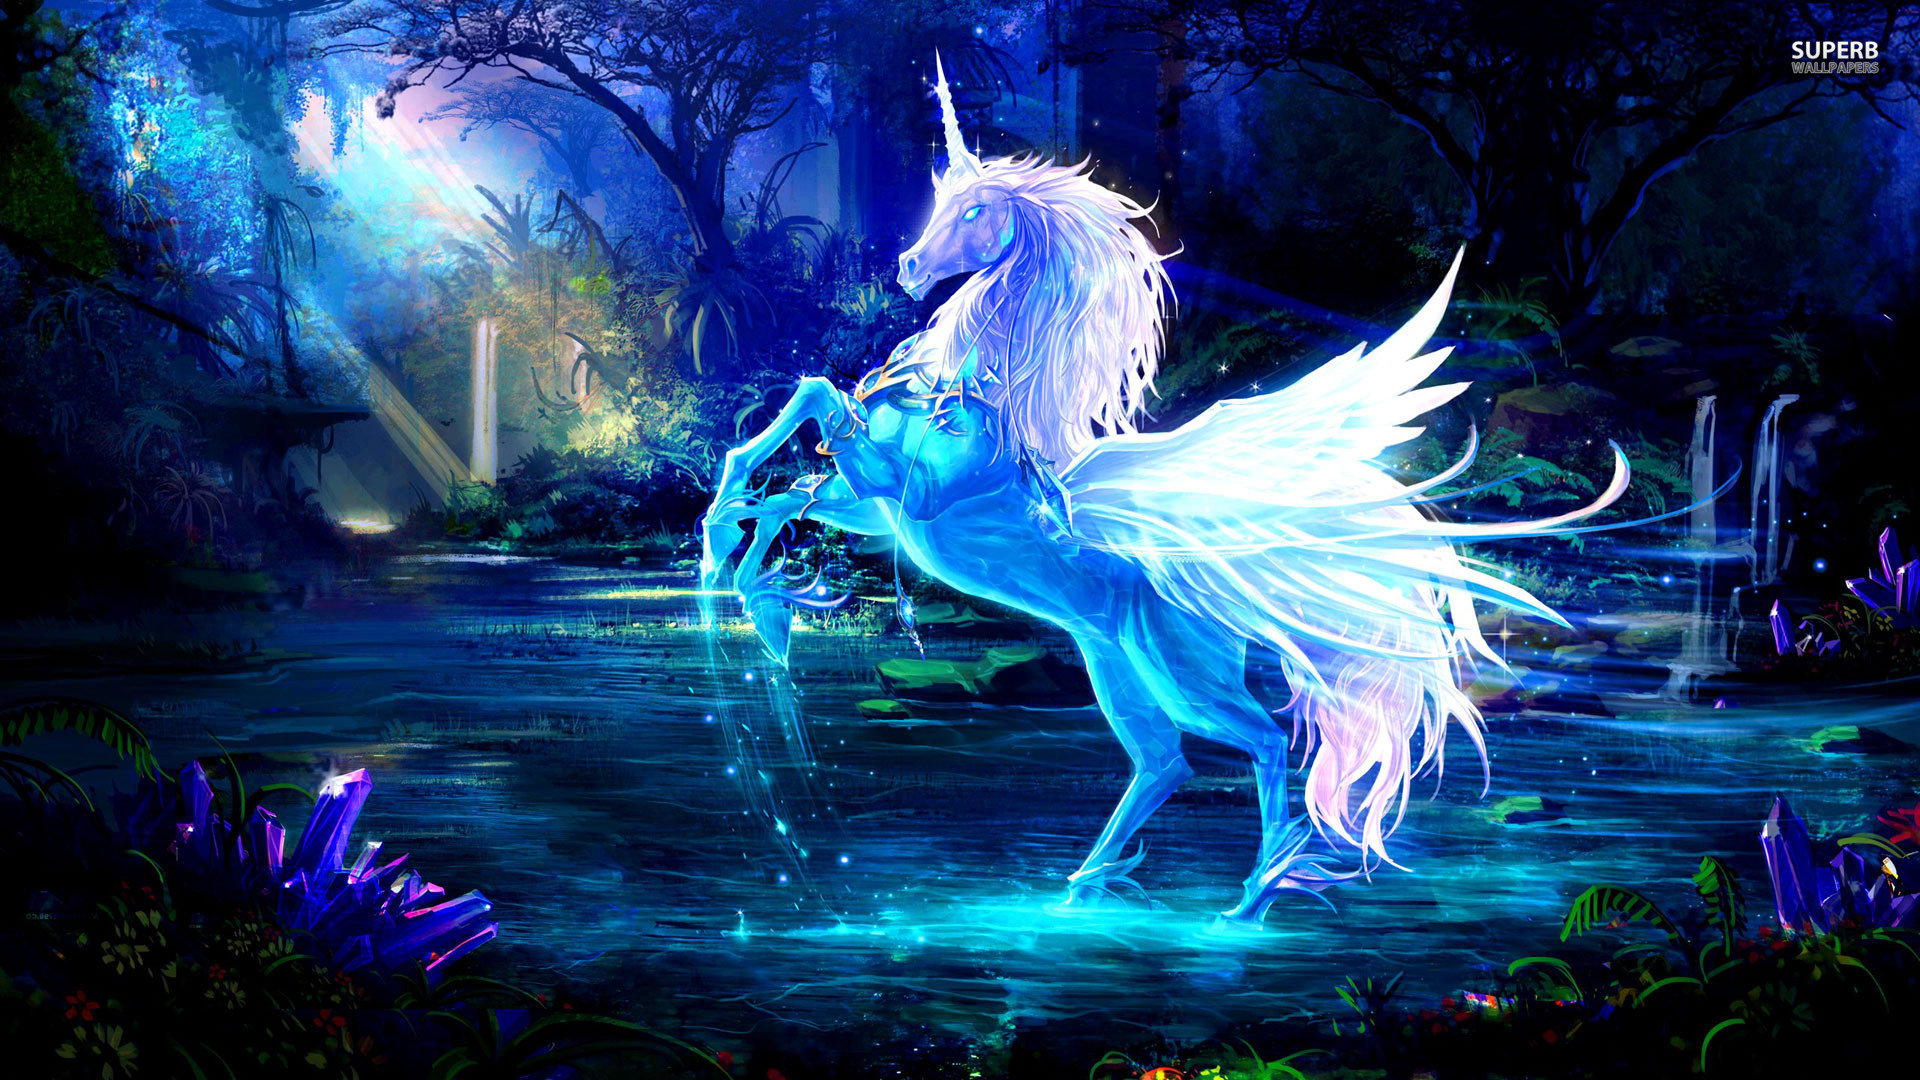 Unicorn Wallpapers 1920x1080 Full Hd 1080p Desktop Backgrounds